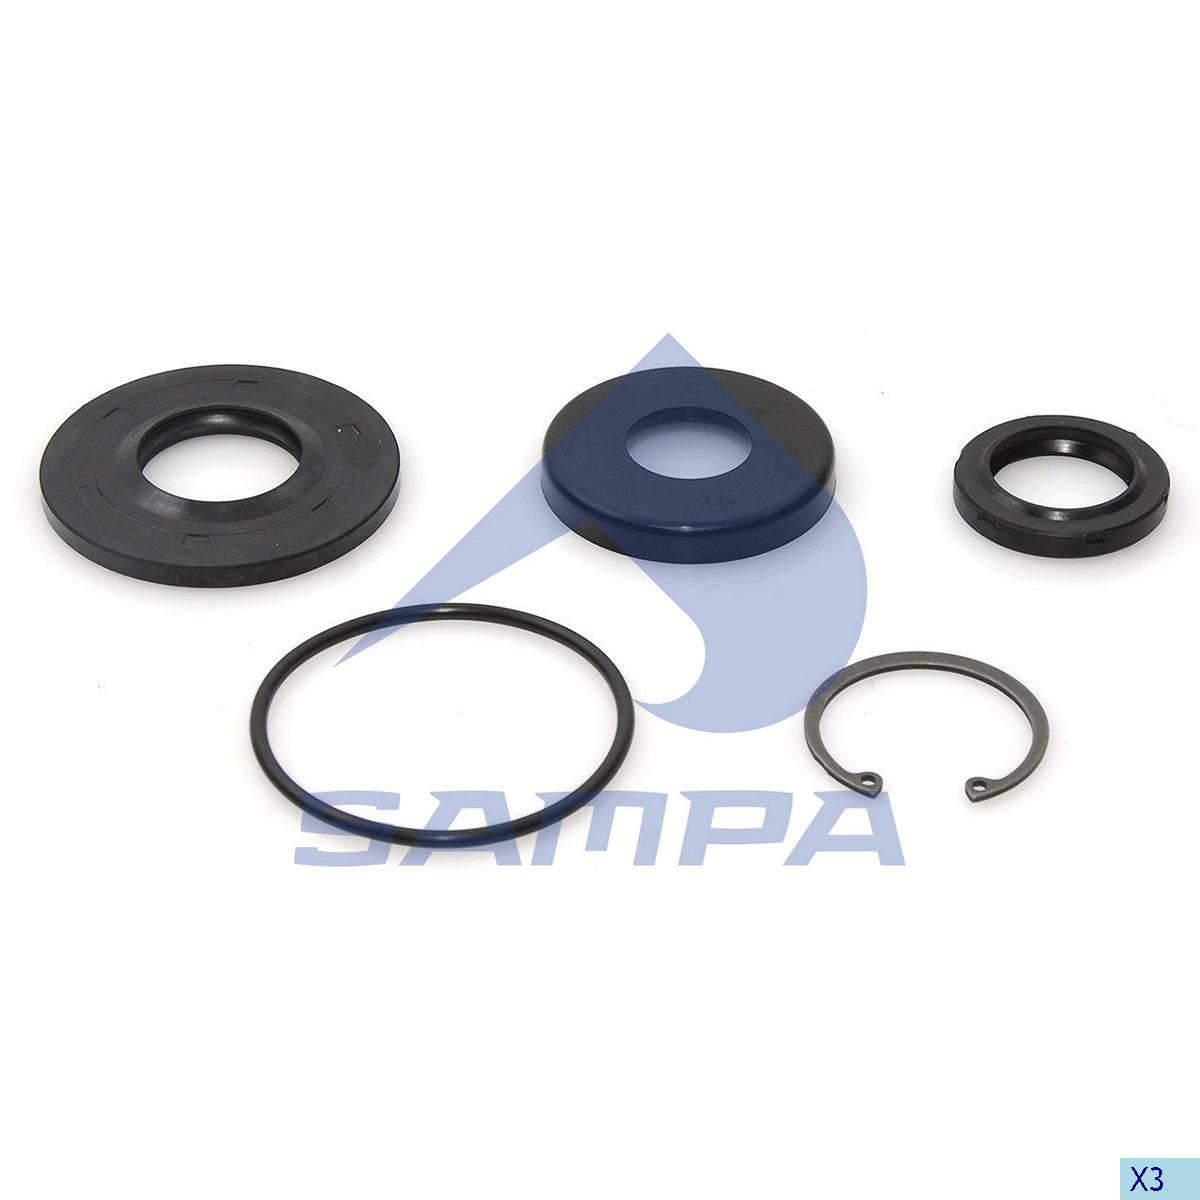 Repair Kit, Steering Pump, Scania, Steering